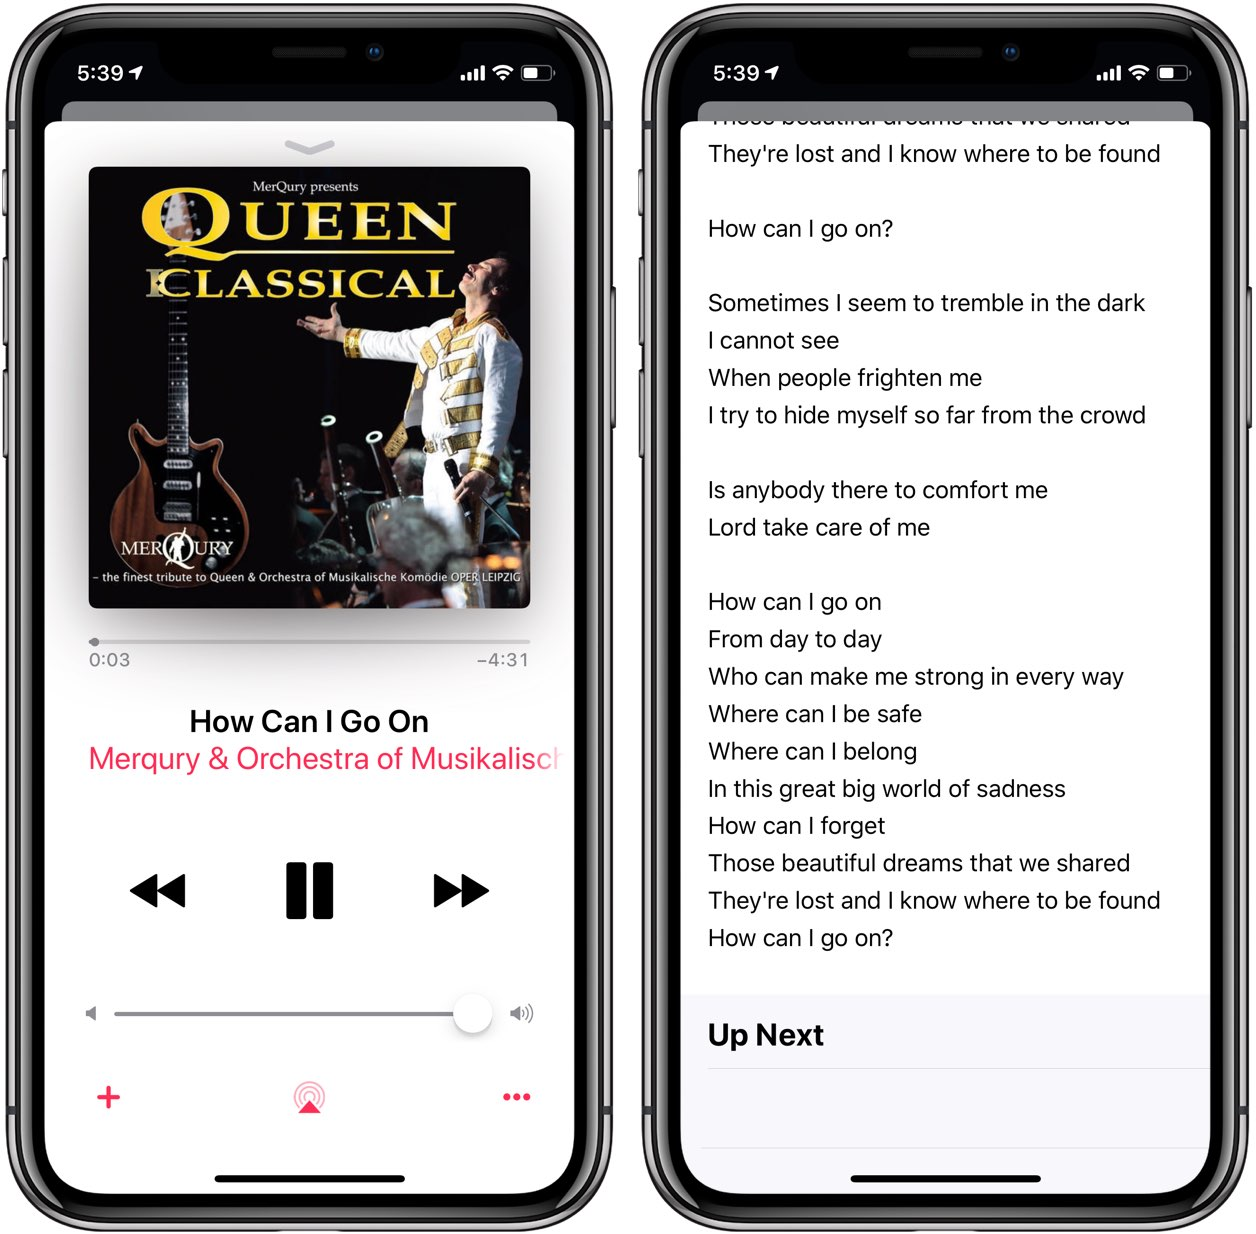 Lyrics search can work across Apple Music or be limited to your own music library